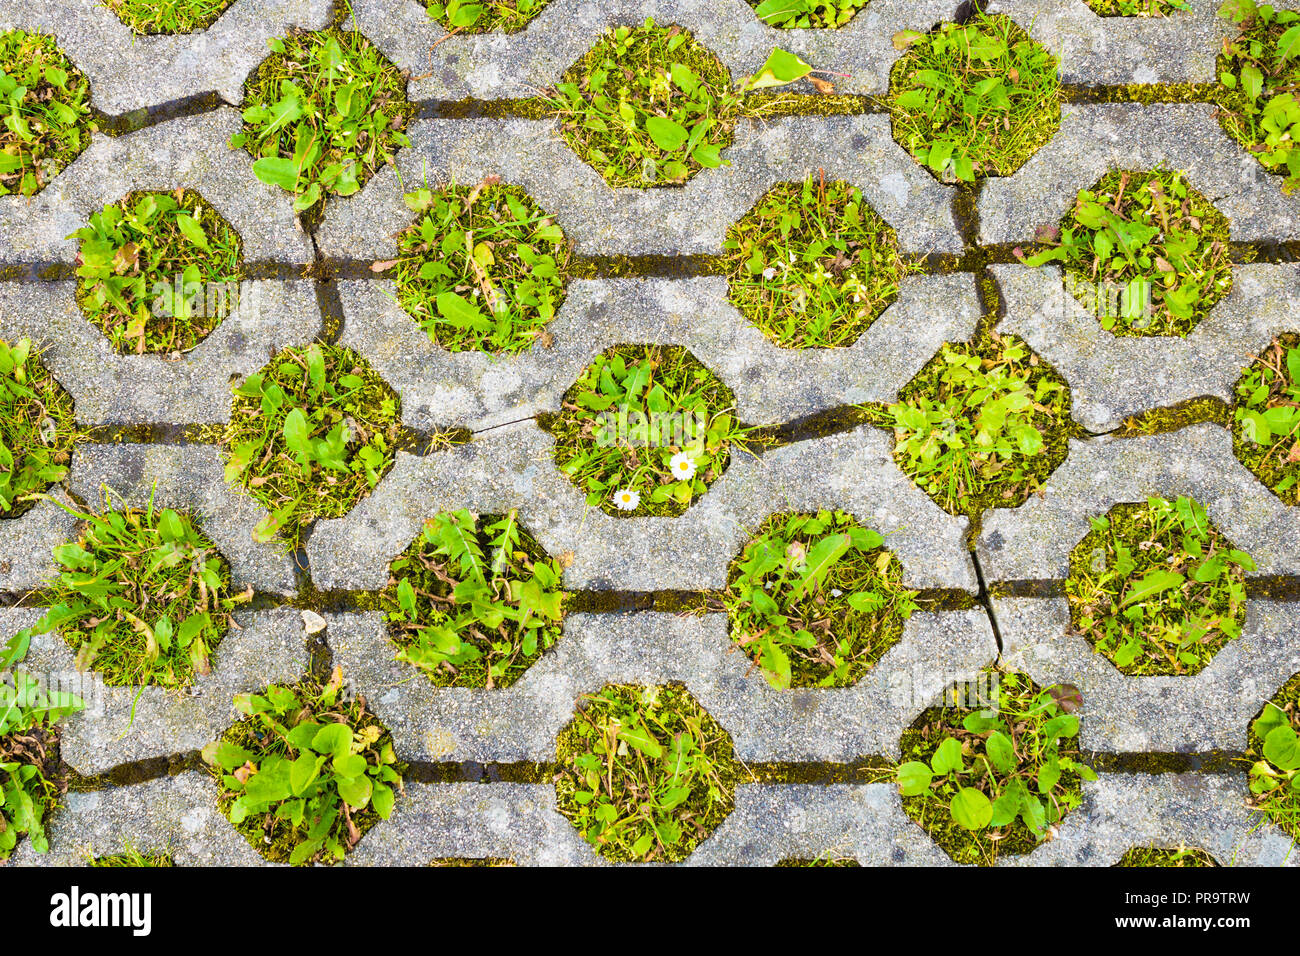 Eco permeable pavement with grass growing through it. Environmentally friendly green parking. - Stock Image